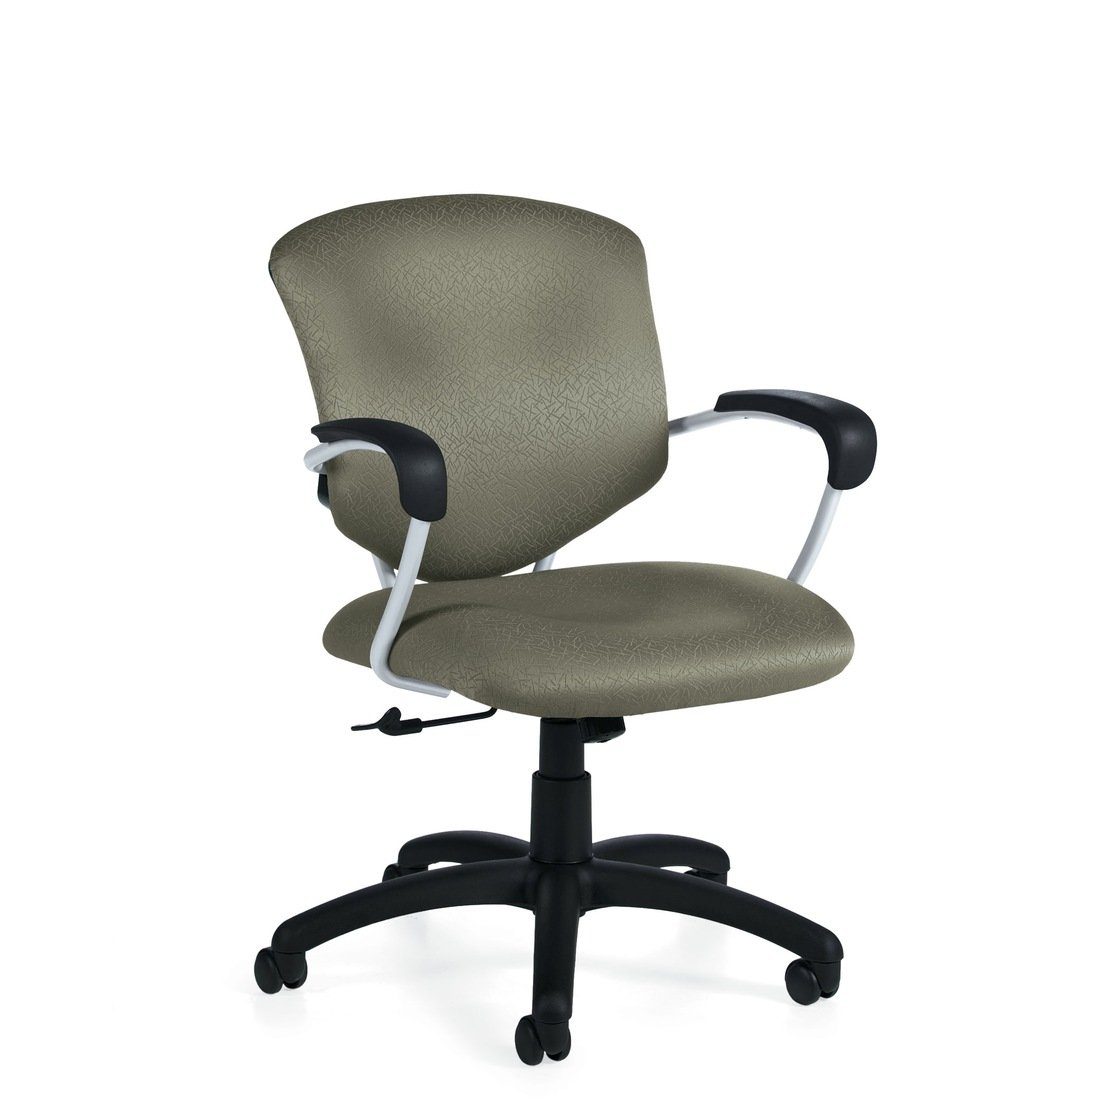 Supra medium back tilter chair, model 5331-4. This chair has been placed on a white background.